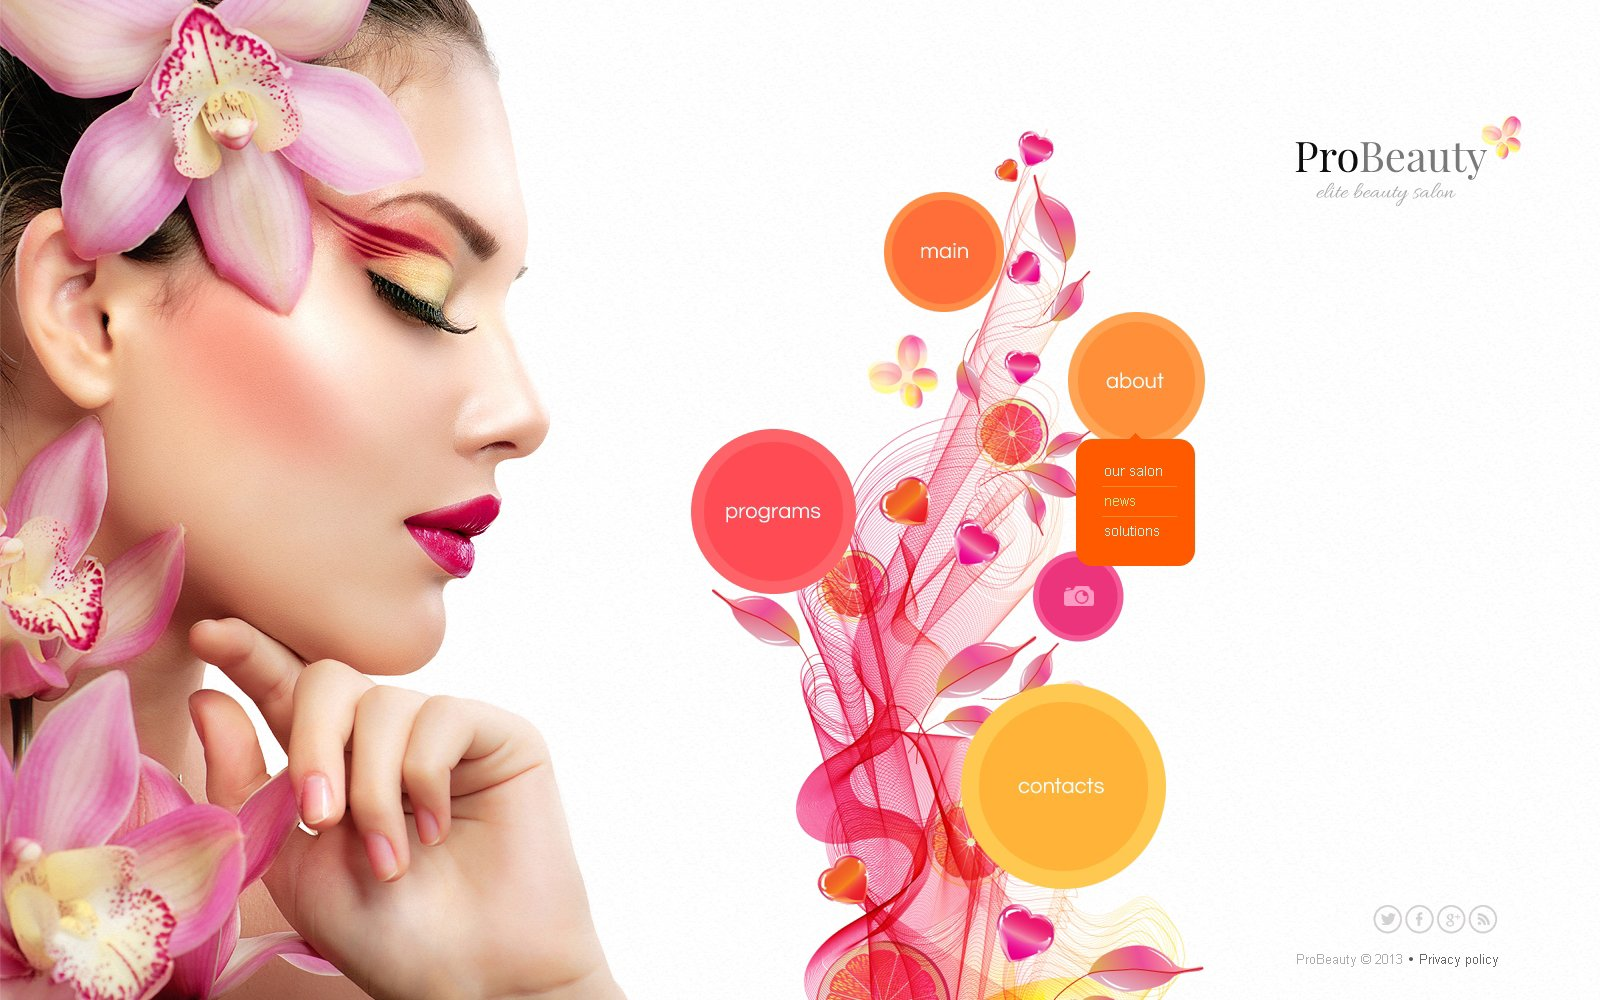 Best Pro Beauty Salon Javascript Based Design 45344 Sale Super Low Price Free Bonuses Instant Download